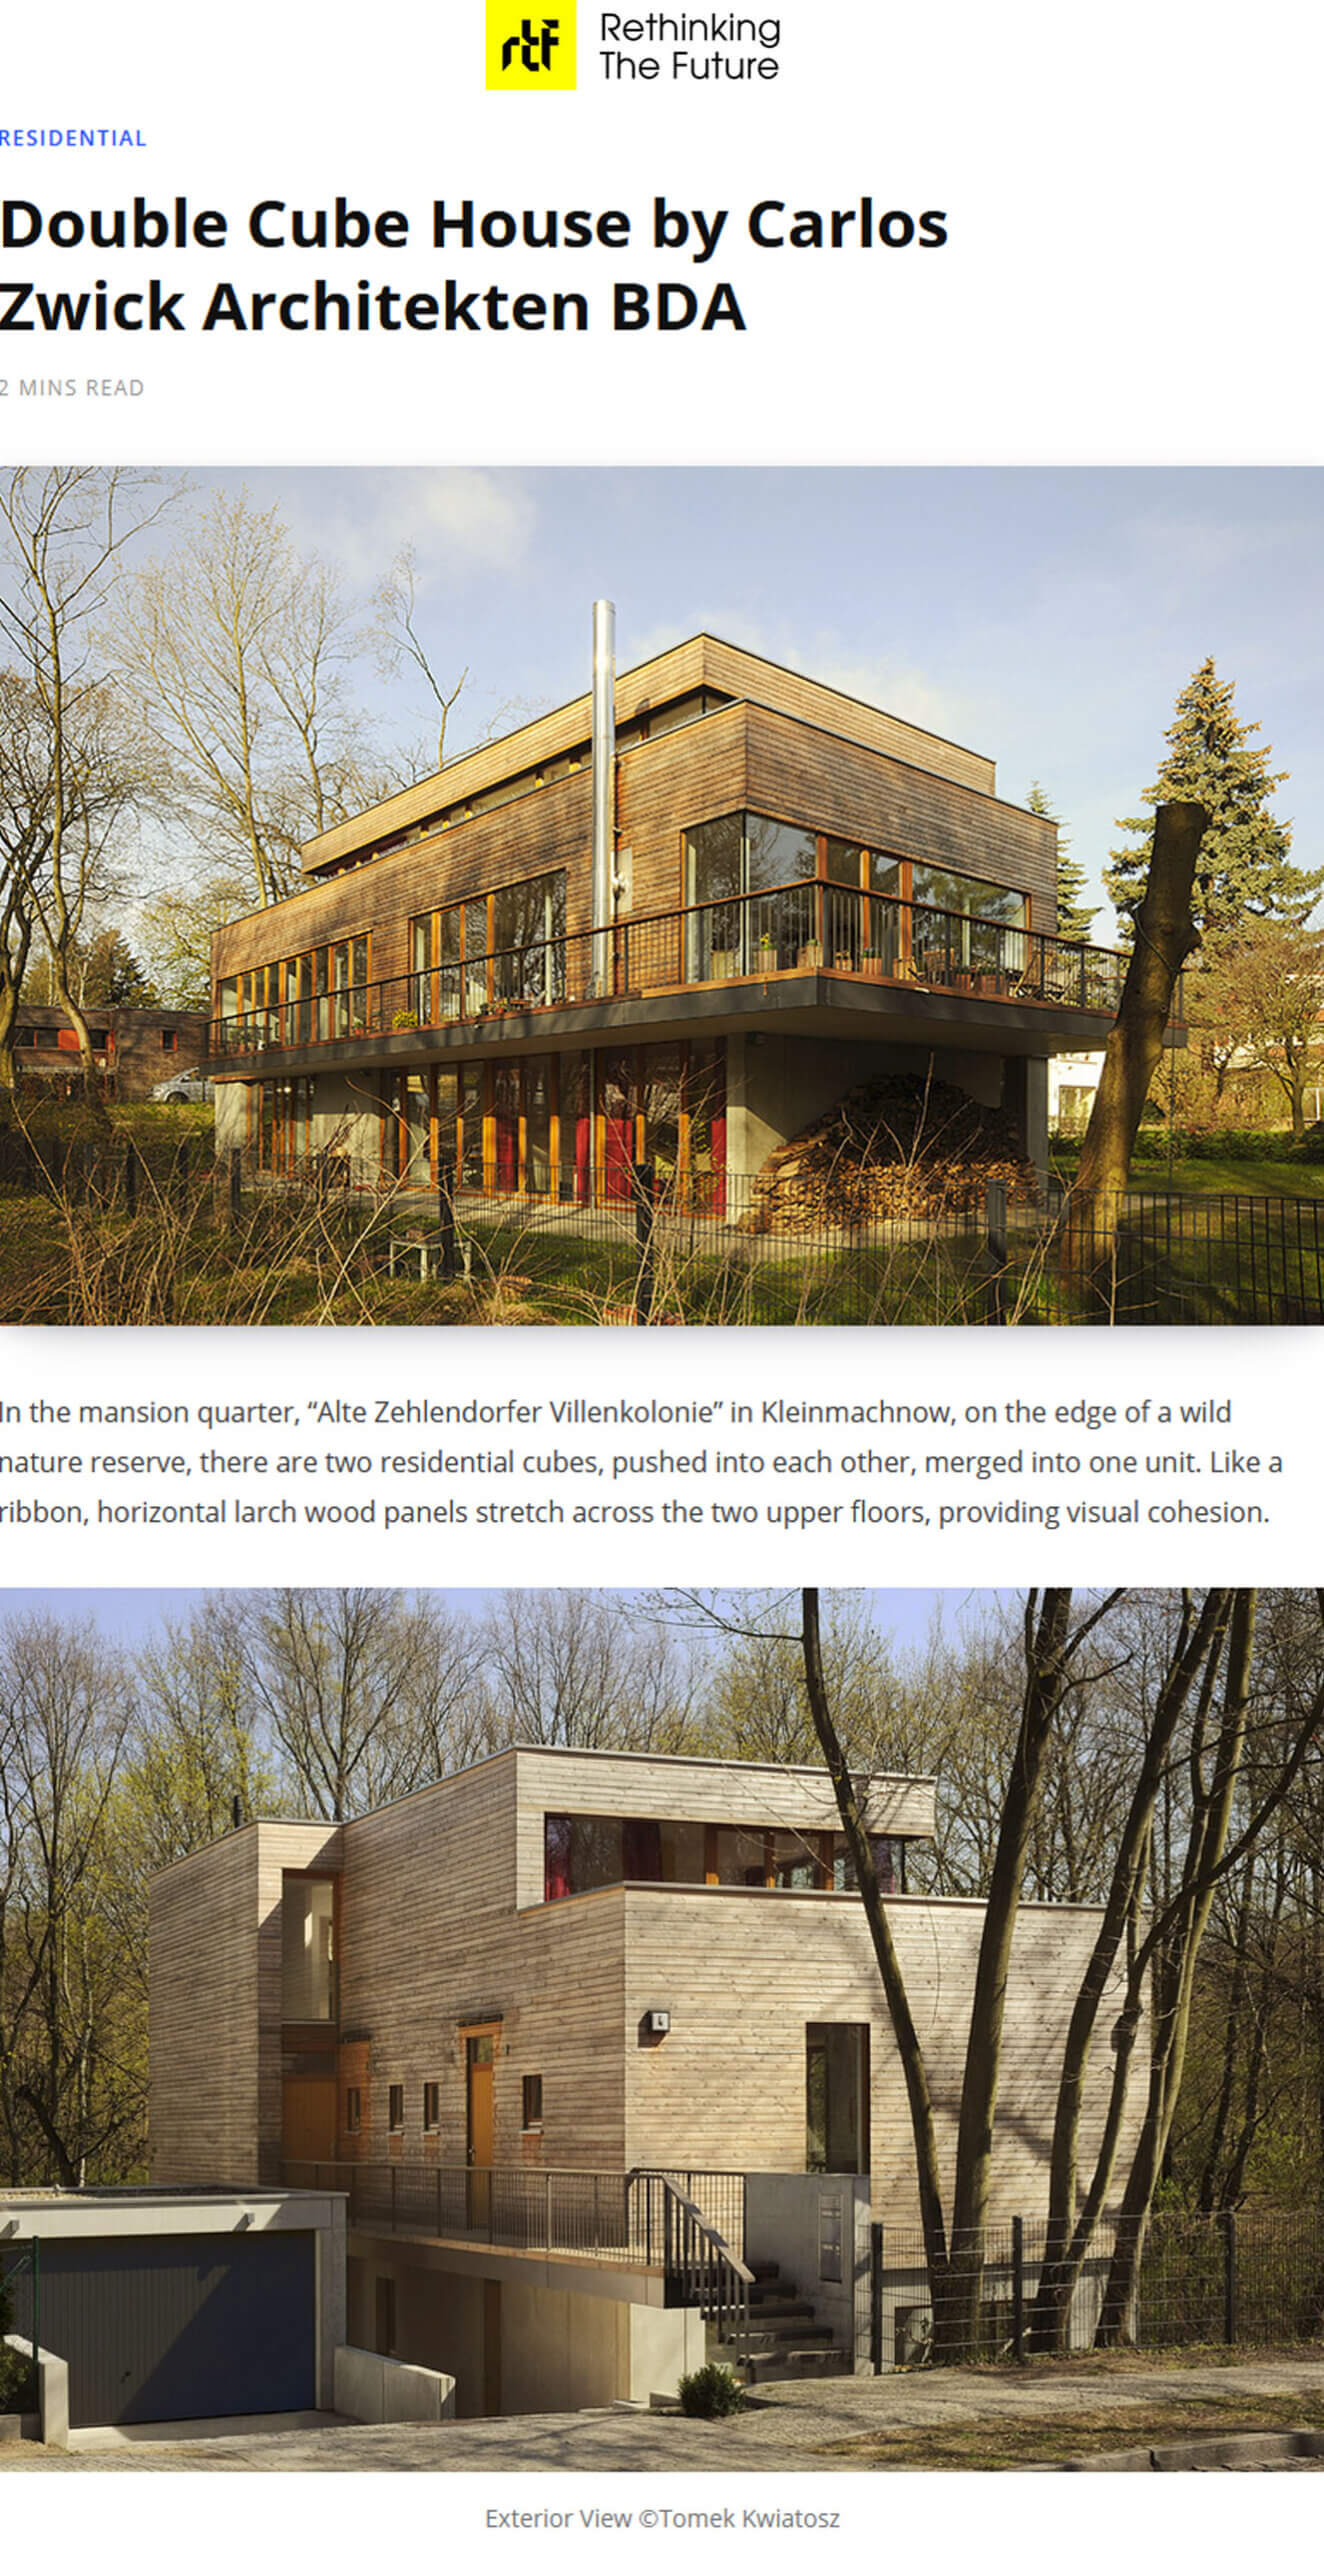 Double Cube House in Rethinking the Future